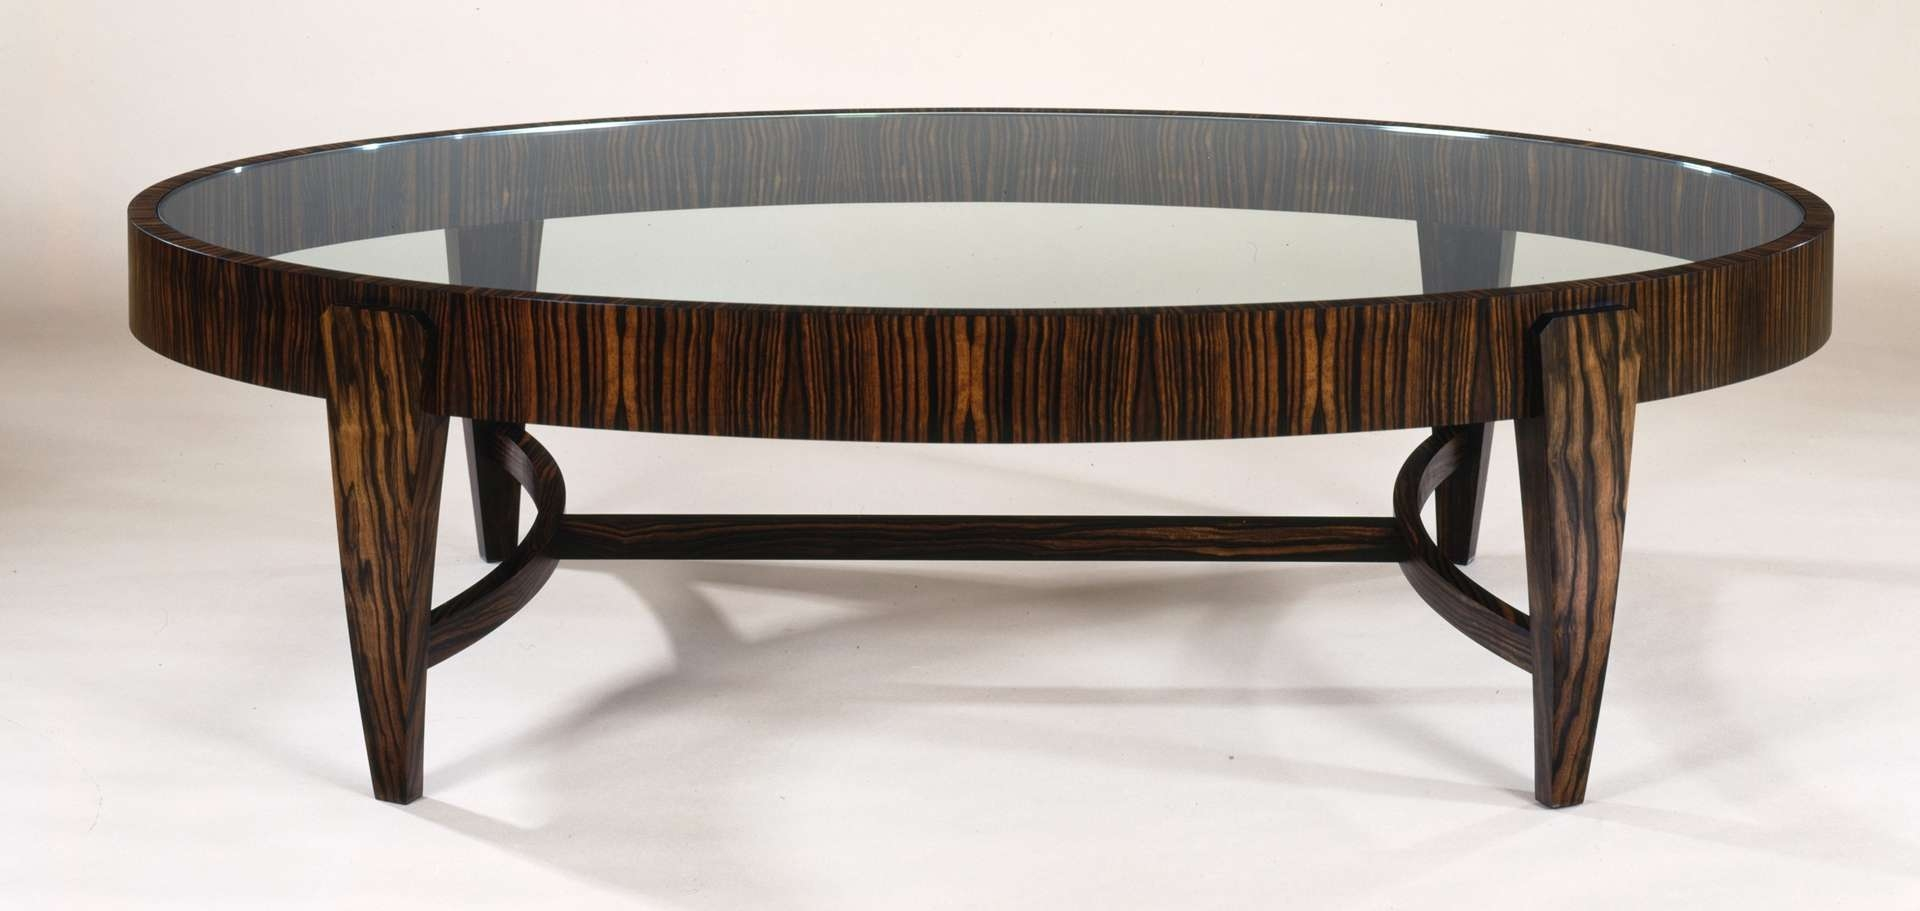 Oval Coffee Table Contemporary Coffee Tables For Small Spaces Regarding Favorite Oval Wood Coffee Tables (View 14 of 20)